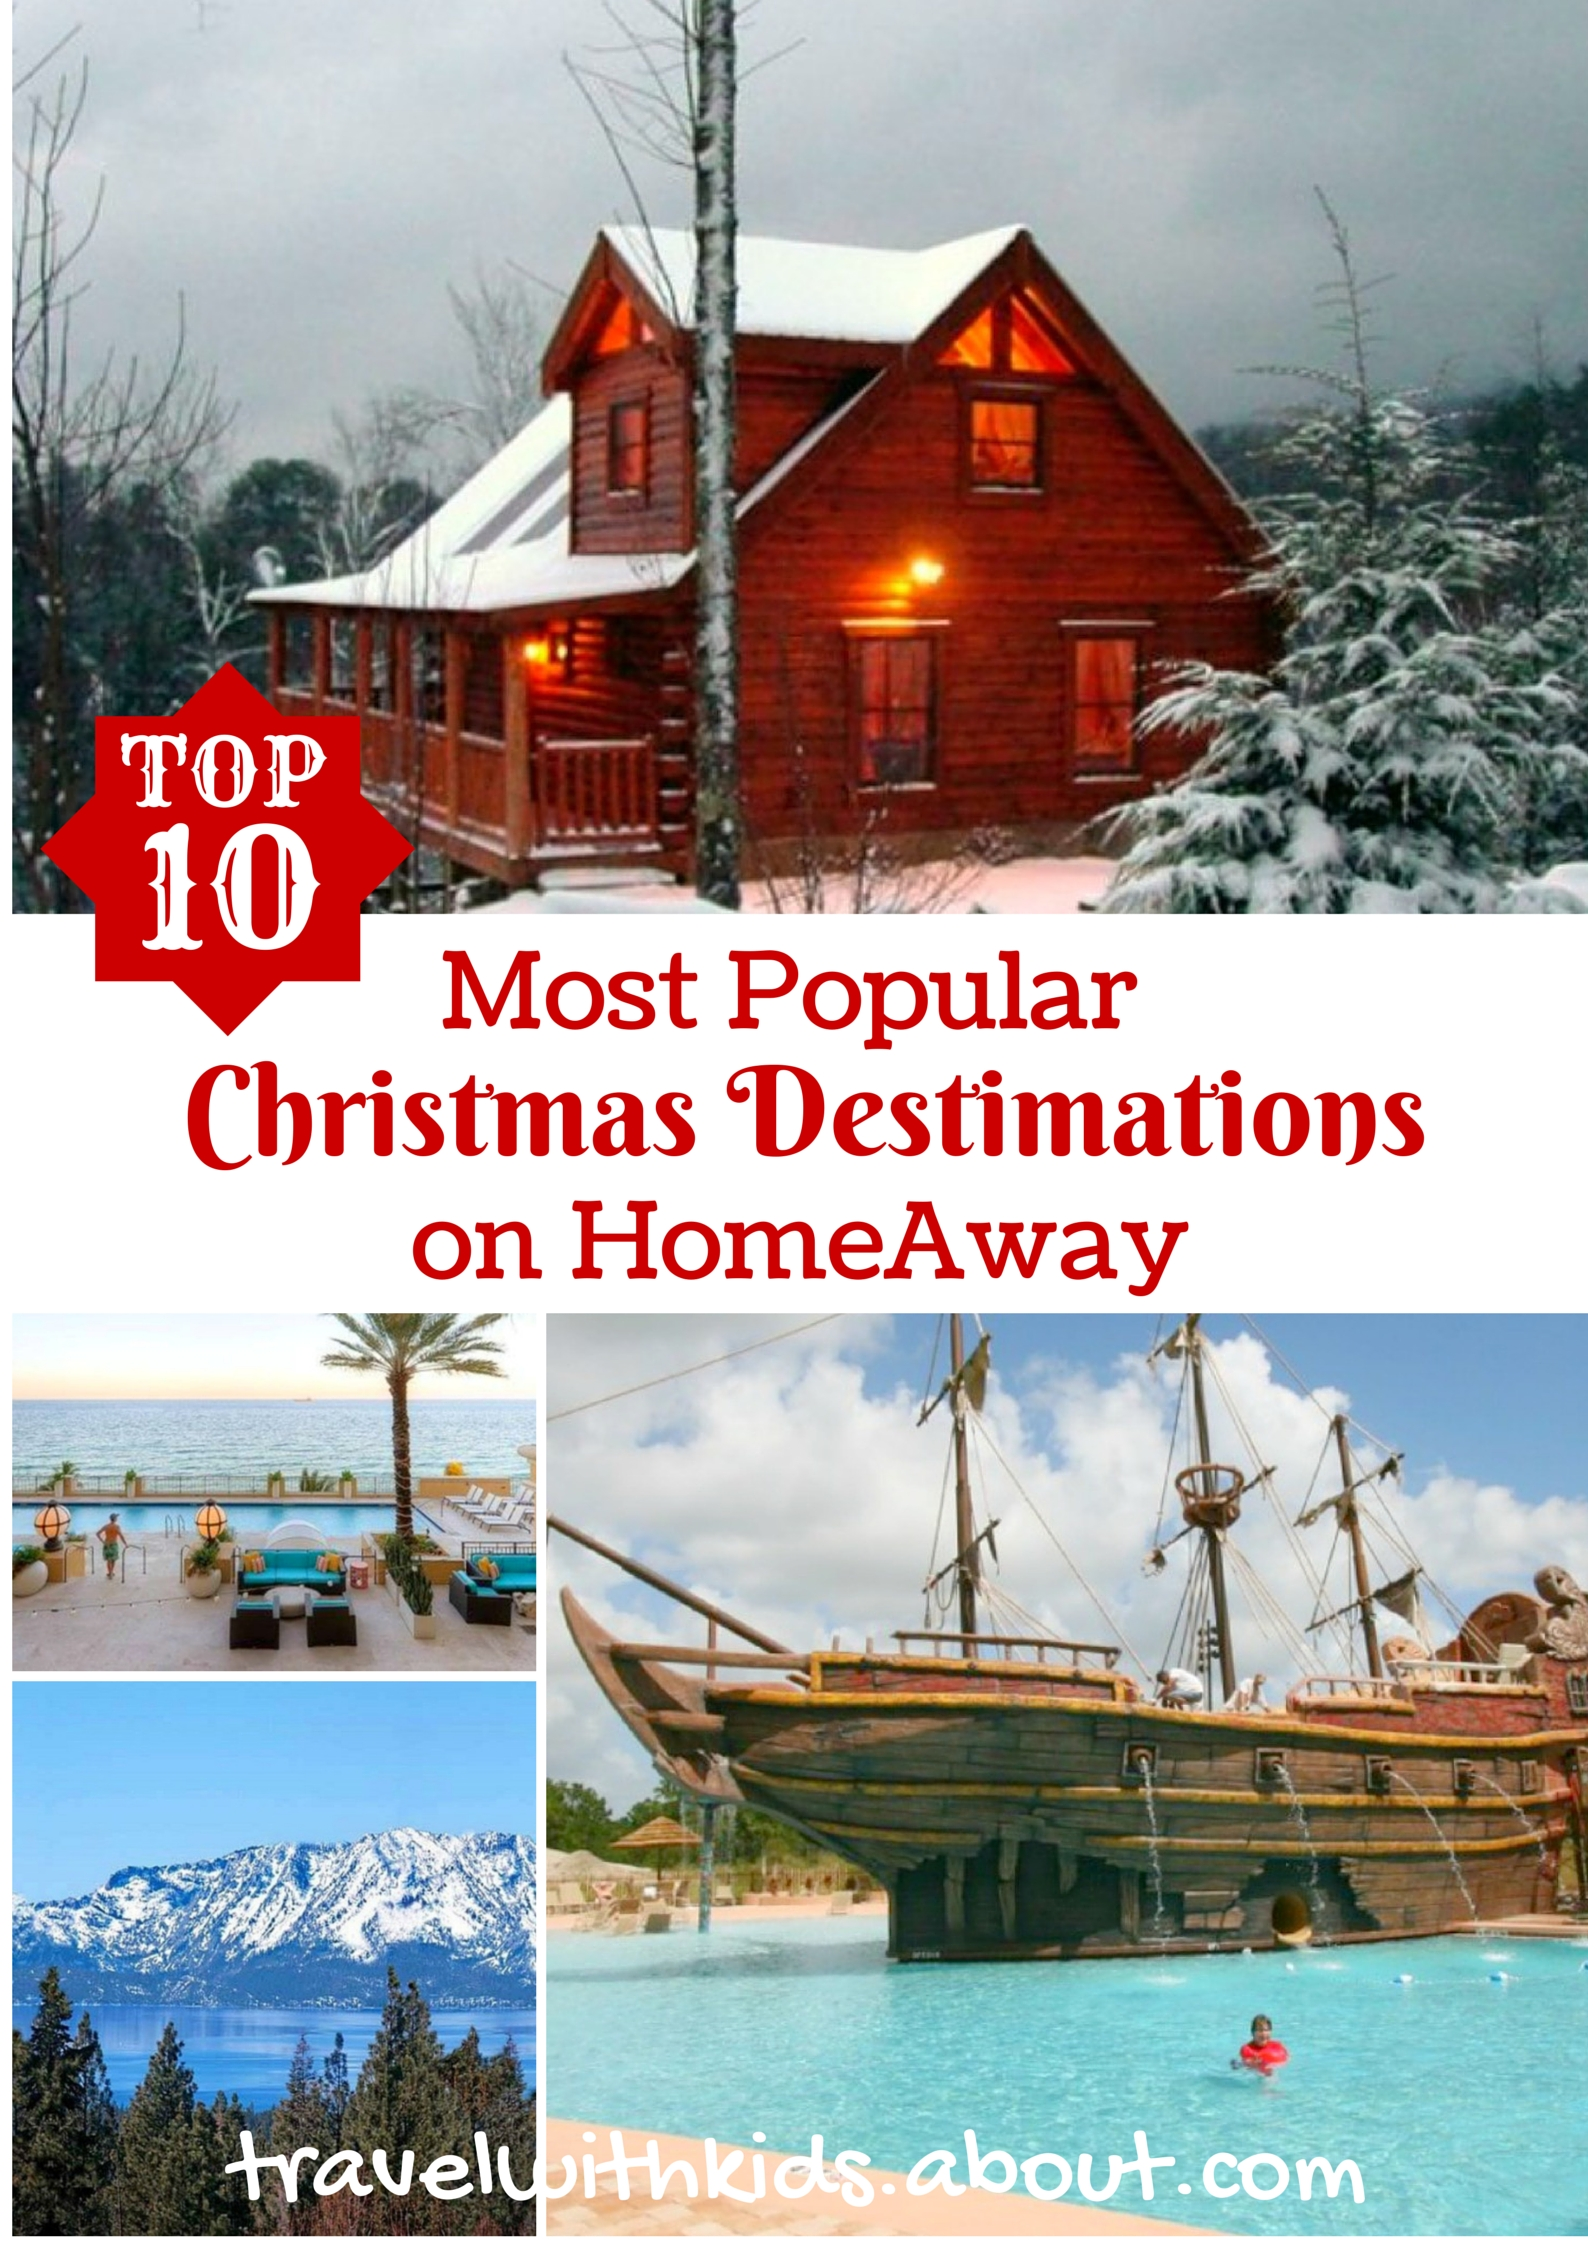 10 Ideal Christmas Vacation Ideas For Families top 10 christmas vacation rental destinations christmas getaways 2020